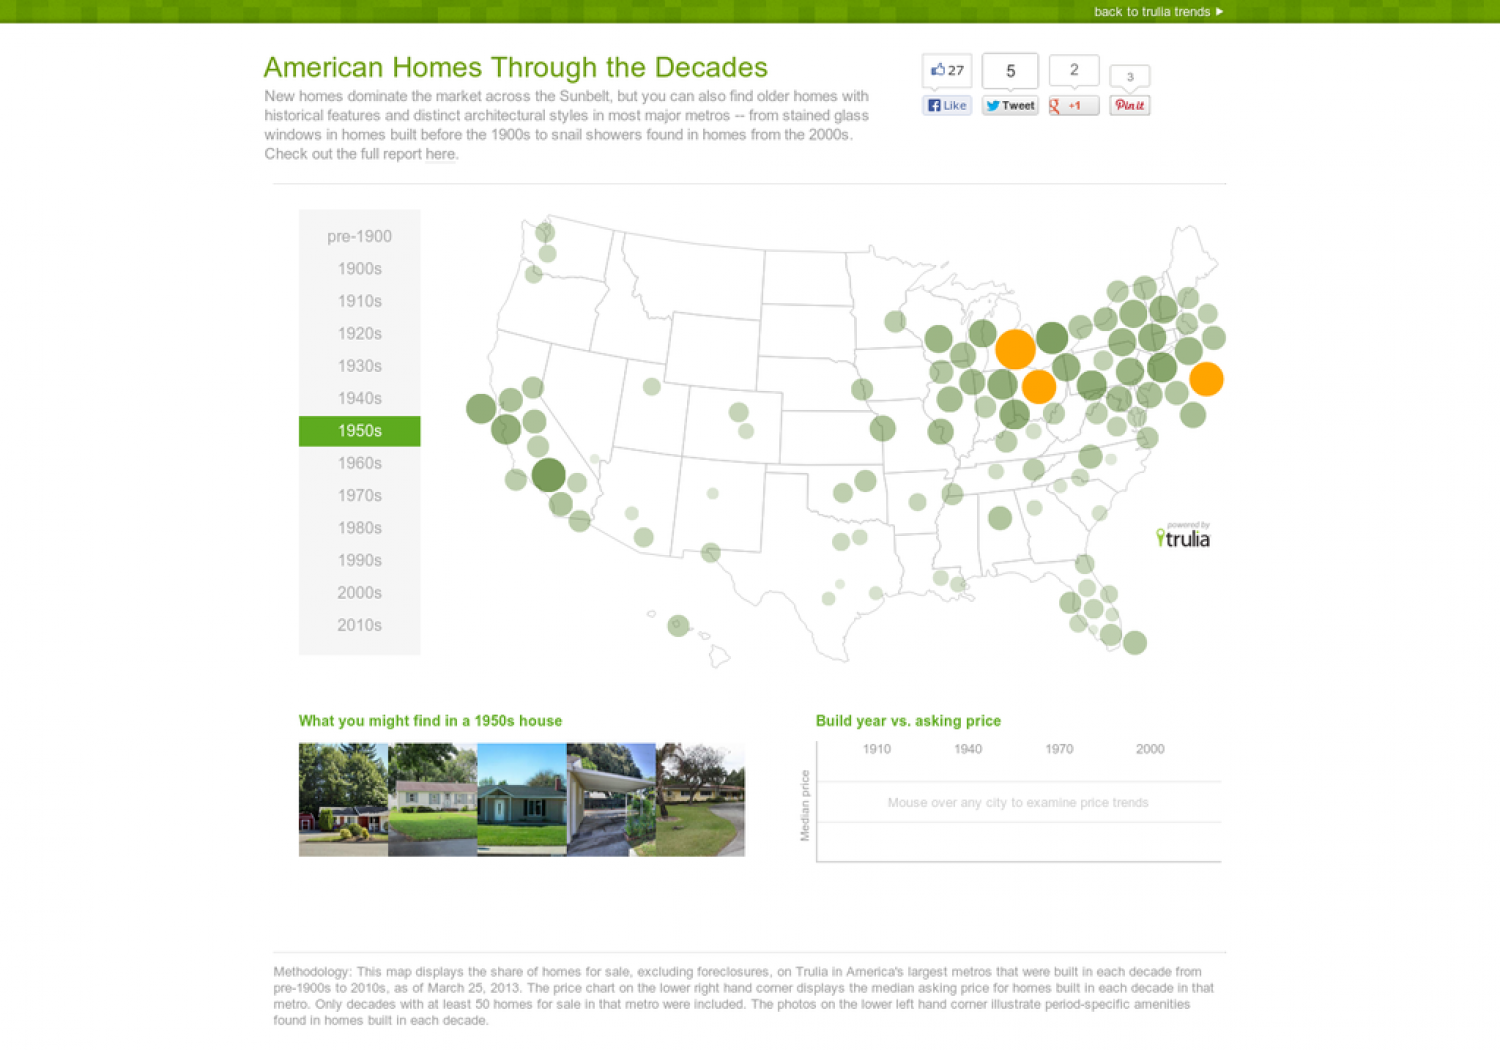 American Homes Through the Decades Infographic